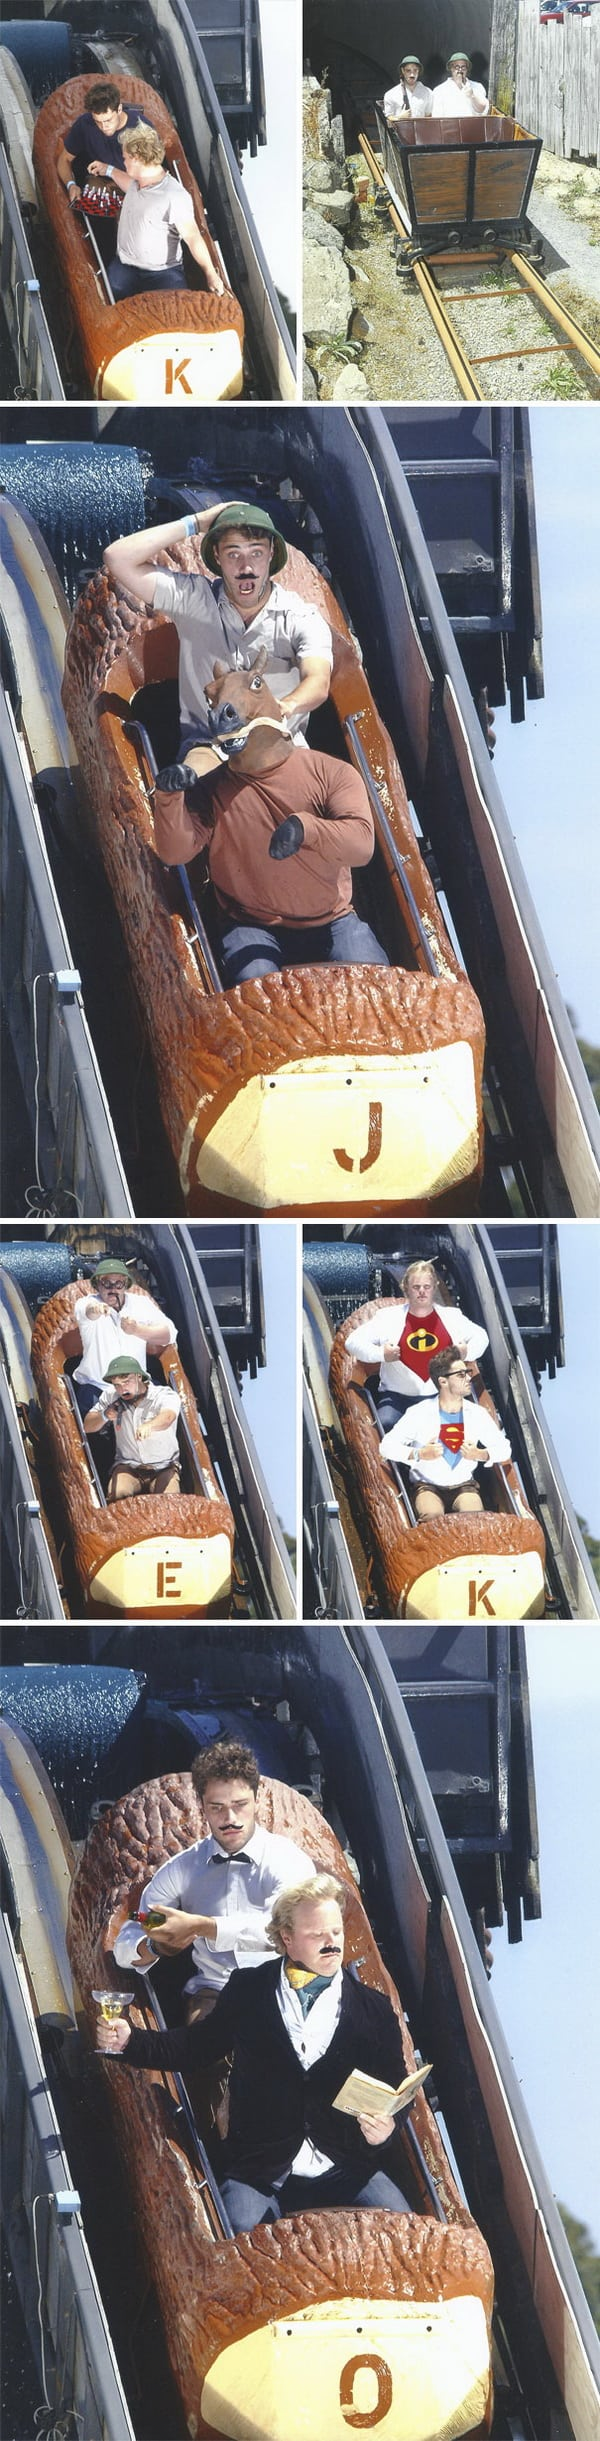 my-brother-and-i-found-out-there-was-a-camera-on-the-roller-coaster